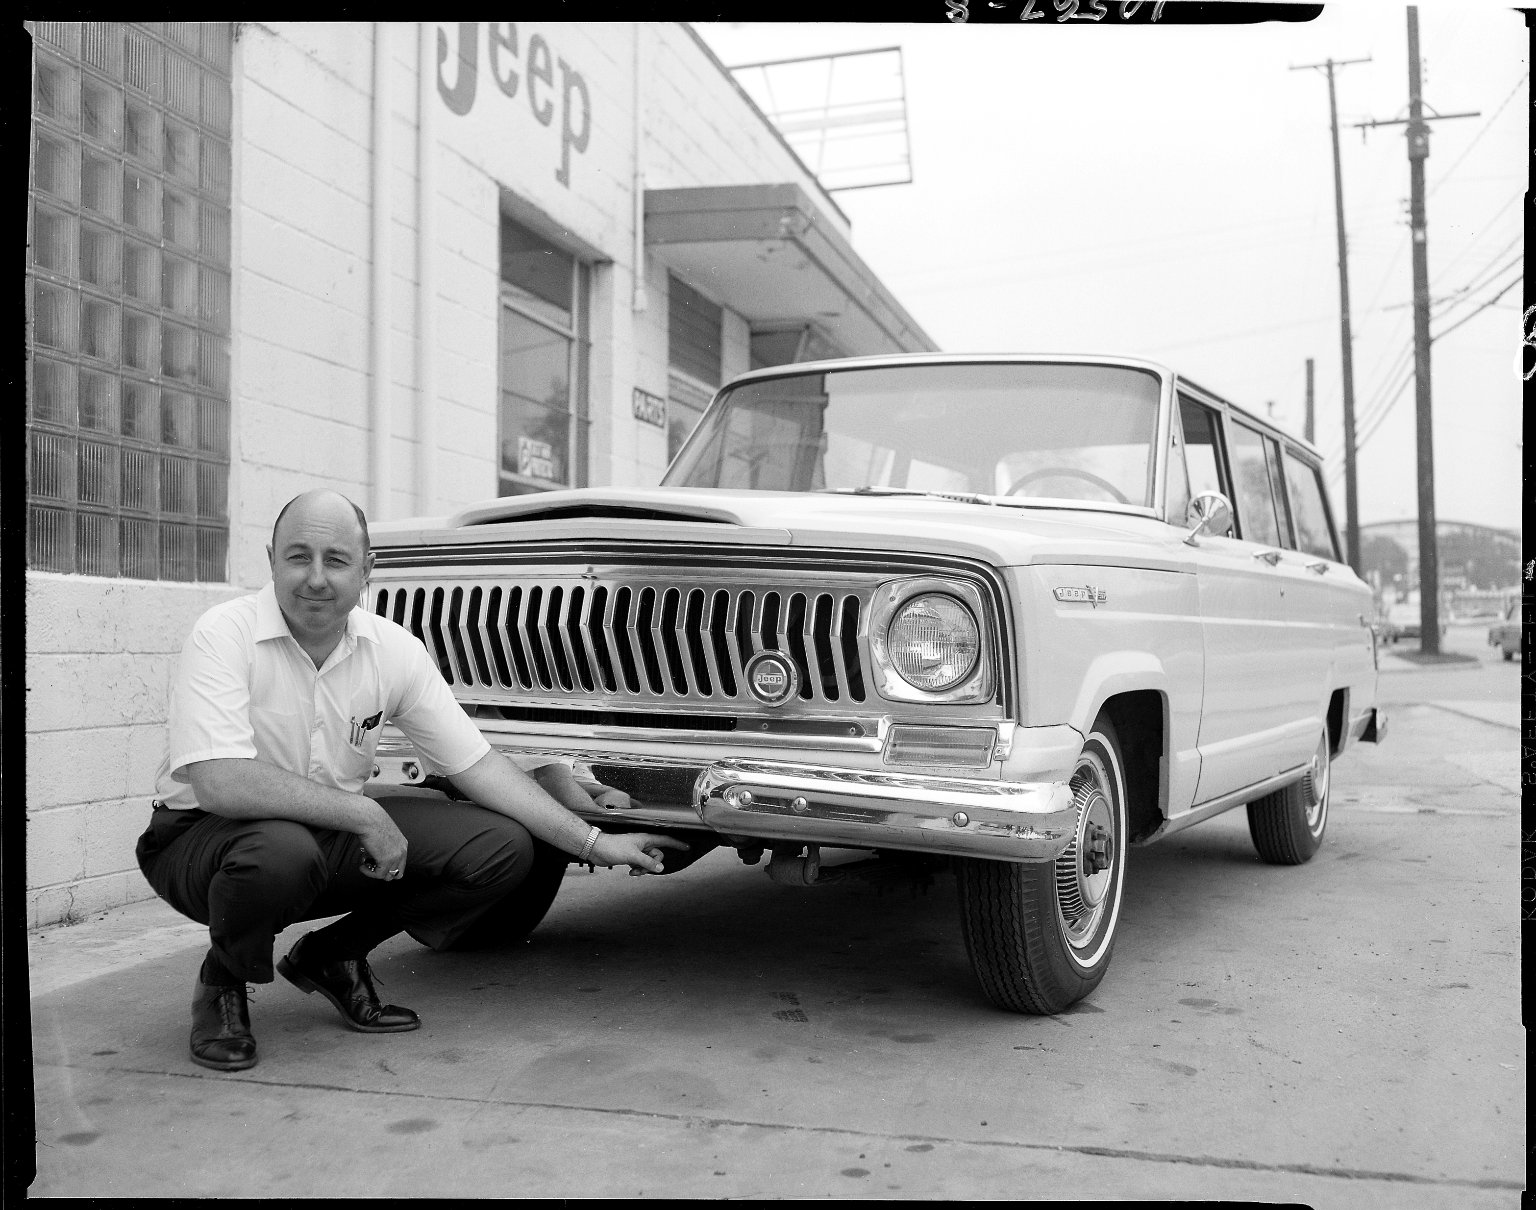 Man with Jeep Wagoneer